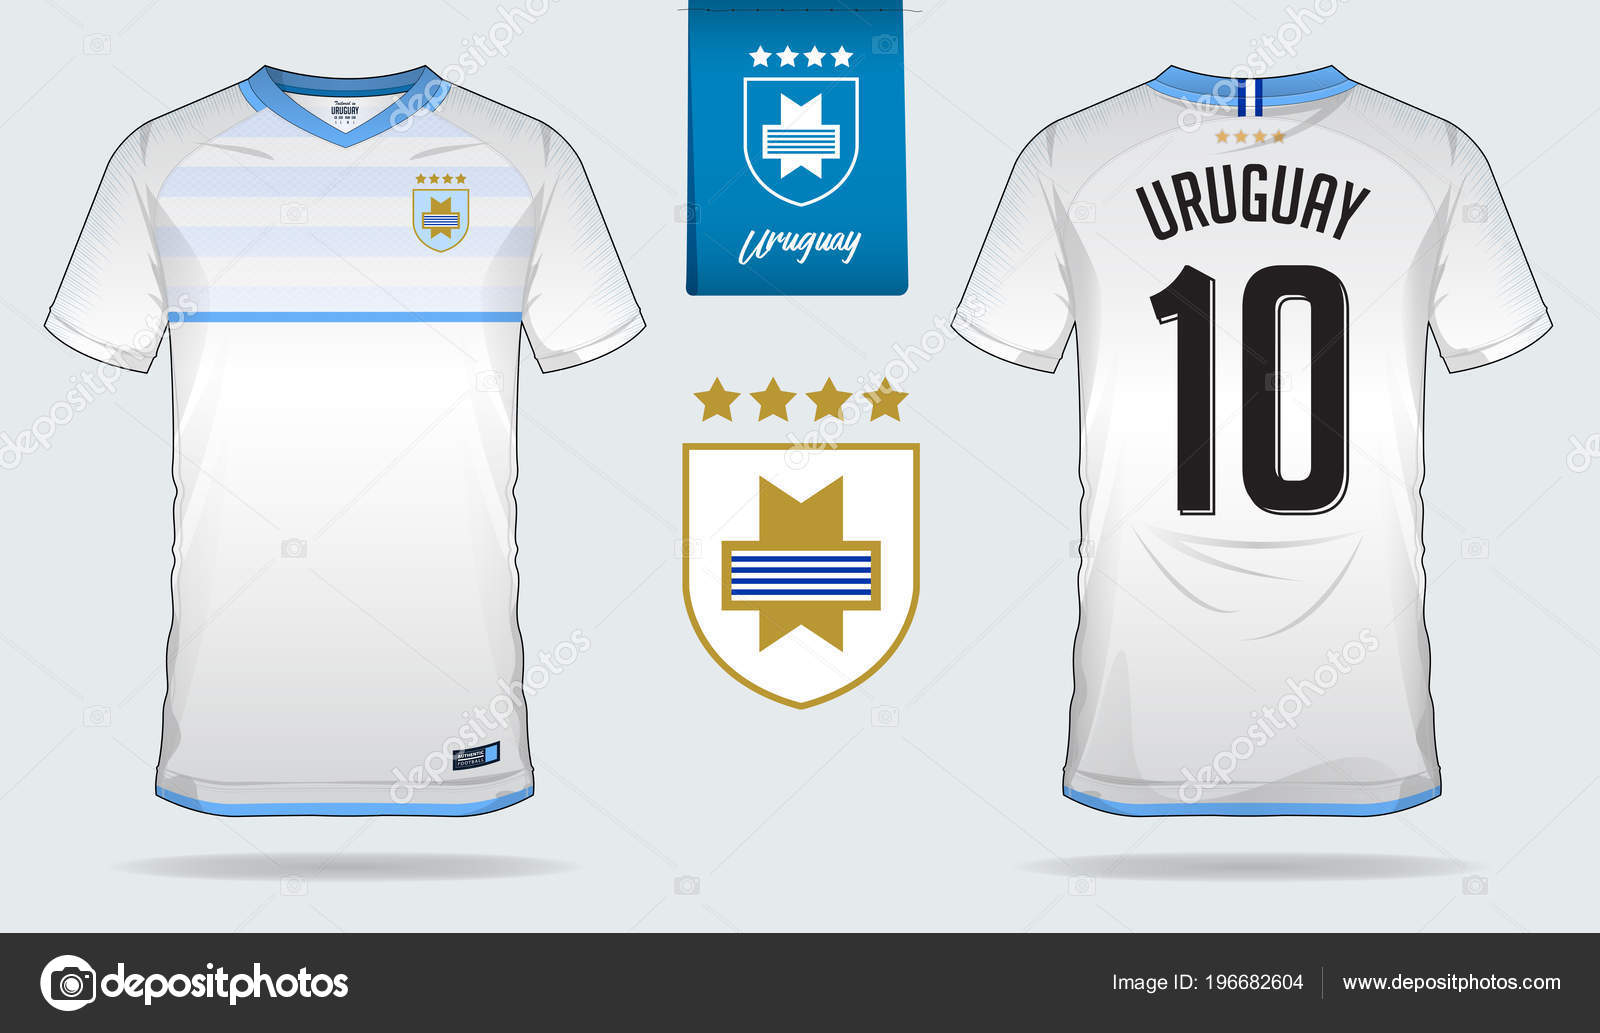 d542d999c74 Set of soccer jersey or football kit template design for Uruguay national  football team. Front and back view soccer uniform. Football t shirt mock up.